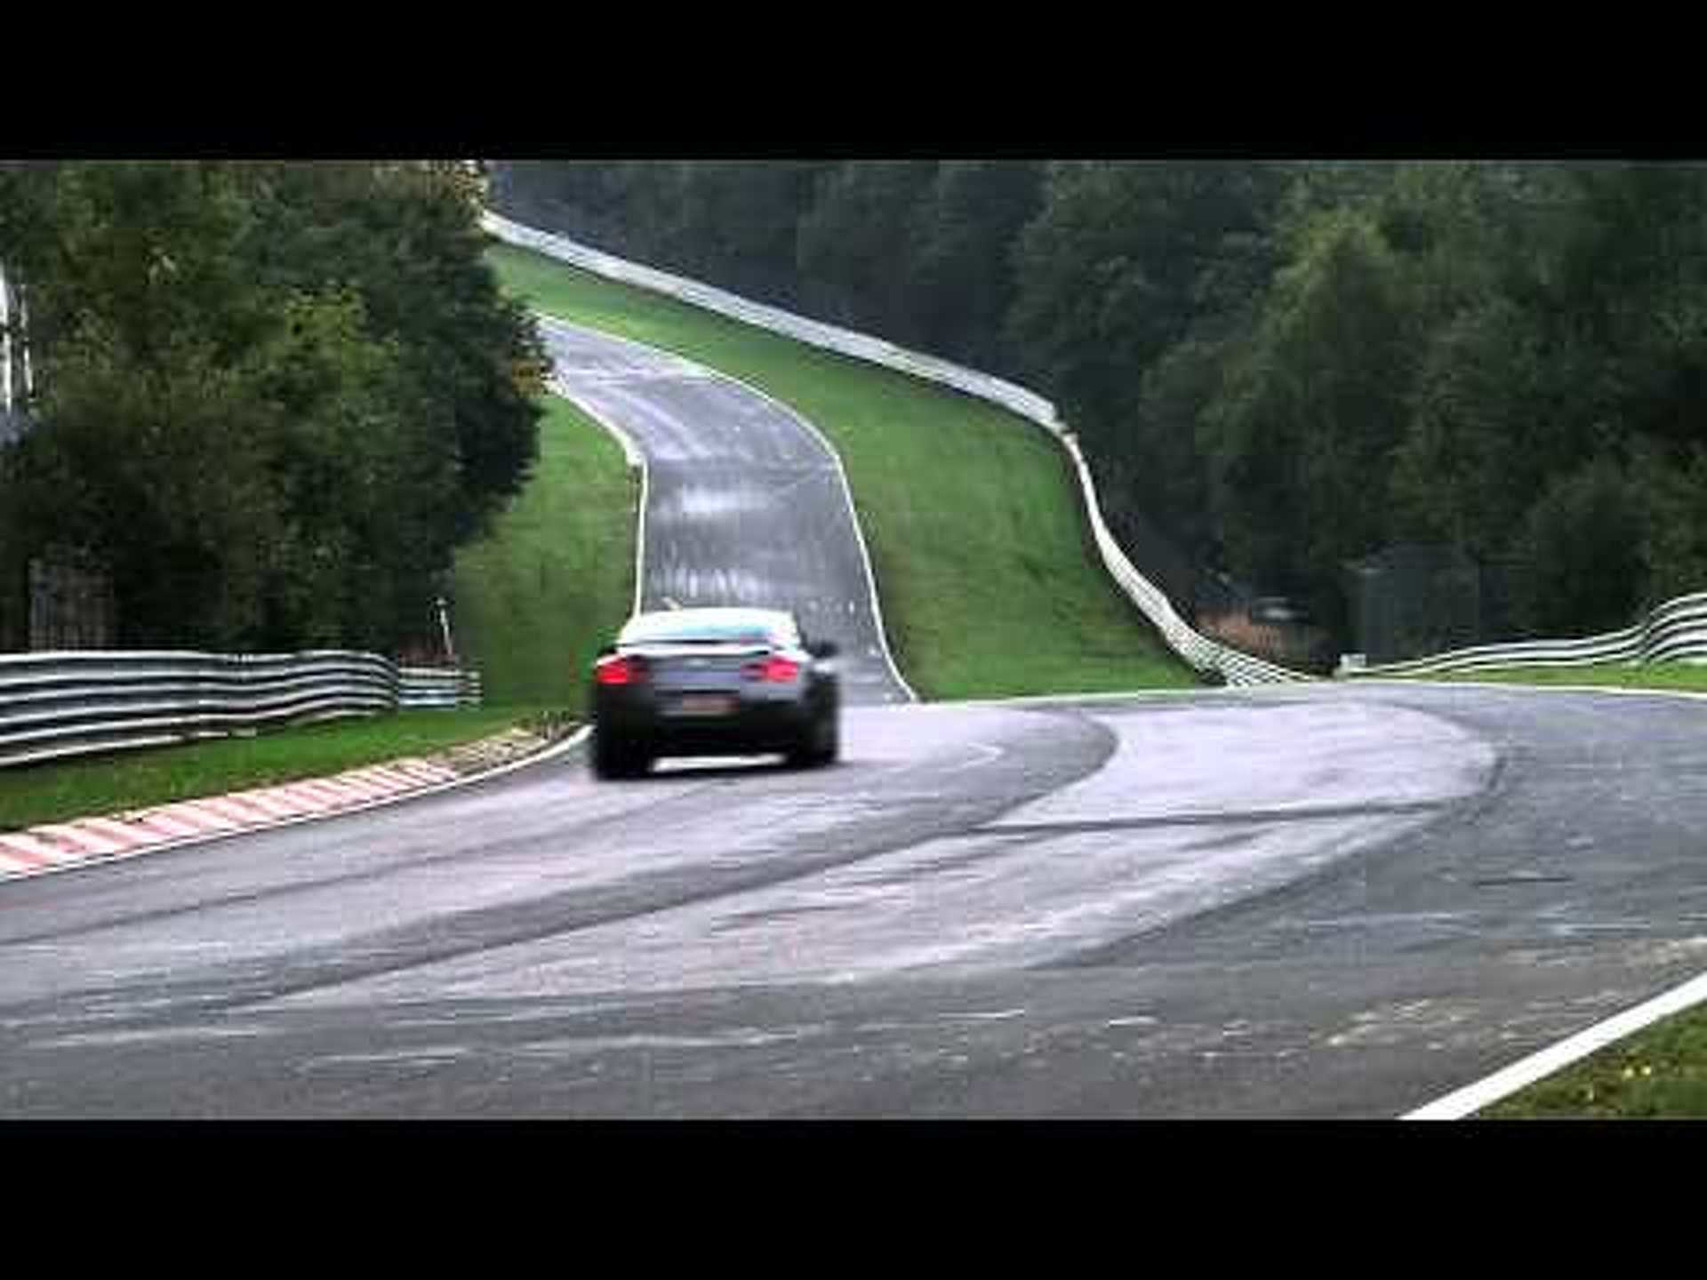 2012 Nissan GT-R Video Footage